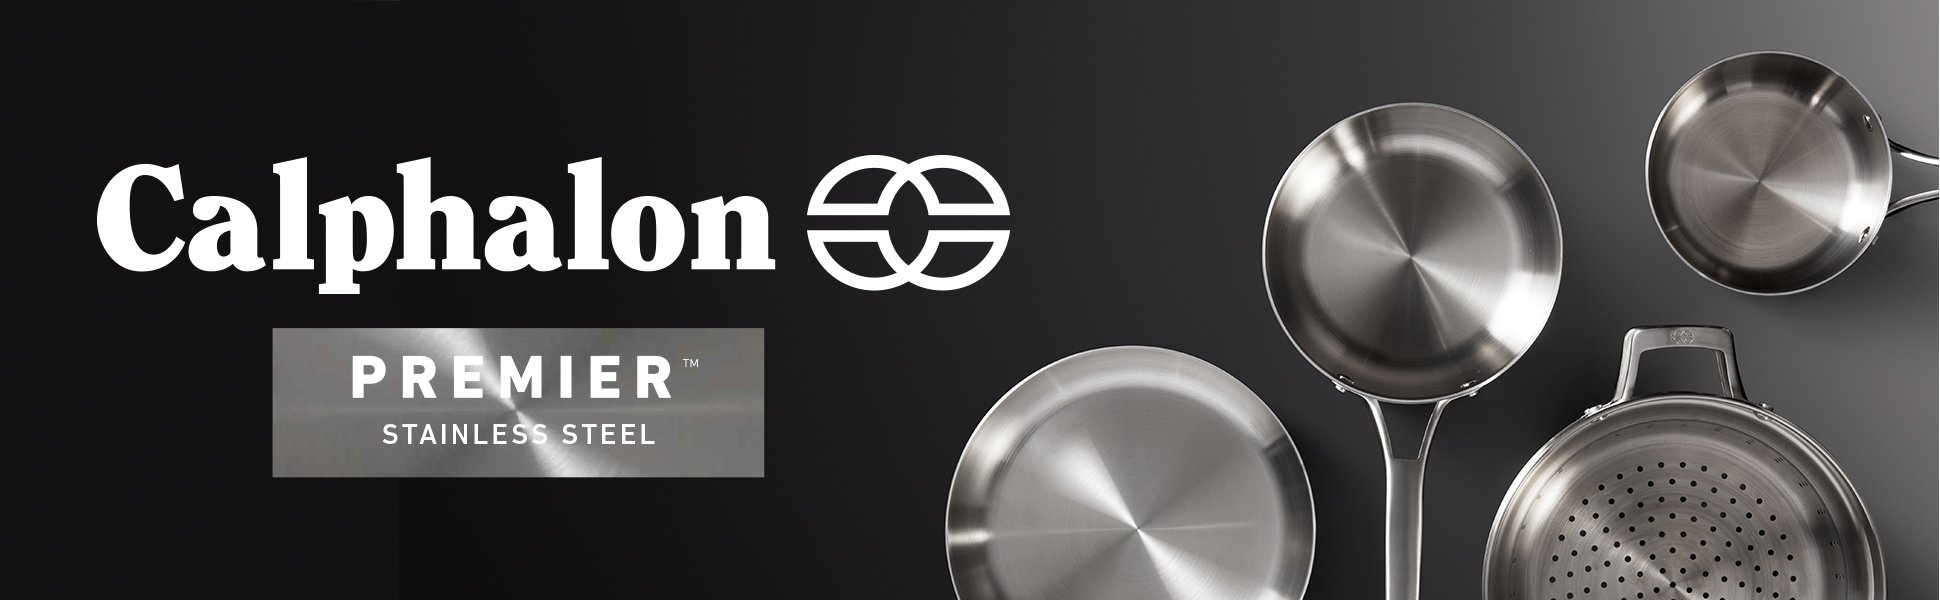 stainless cookware hero banner